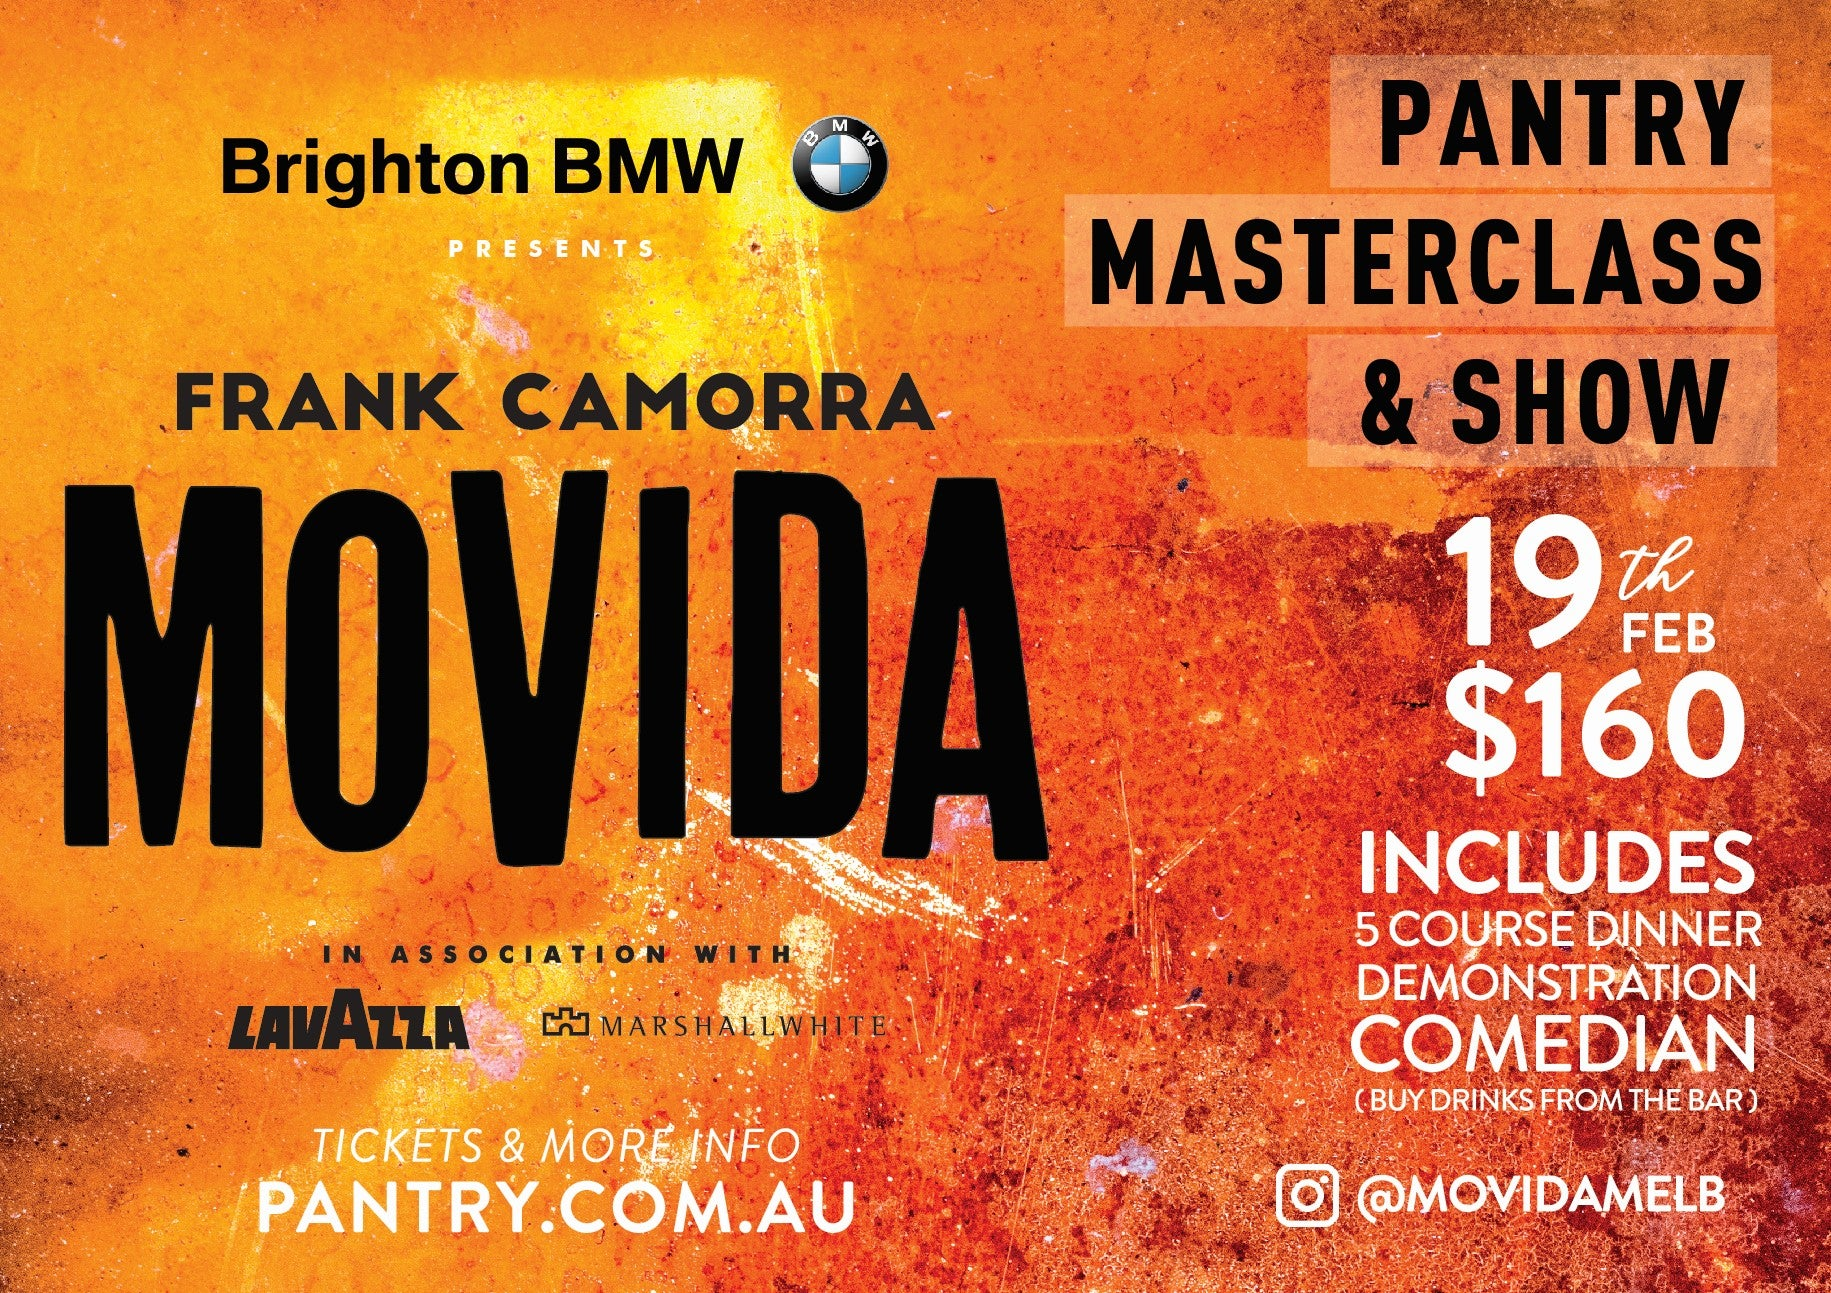 MoVida Masterclass & Show - 19 FEB 2019